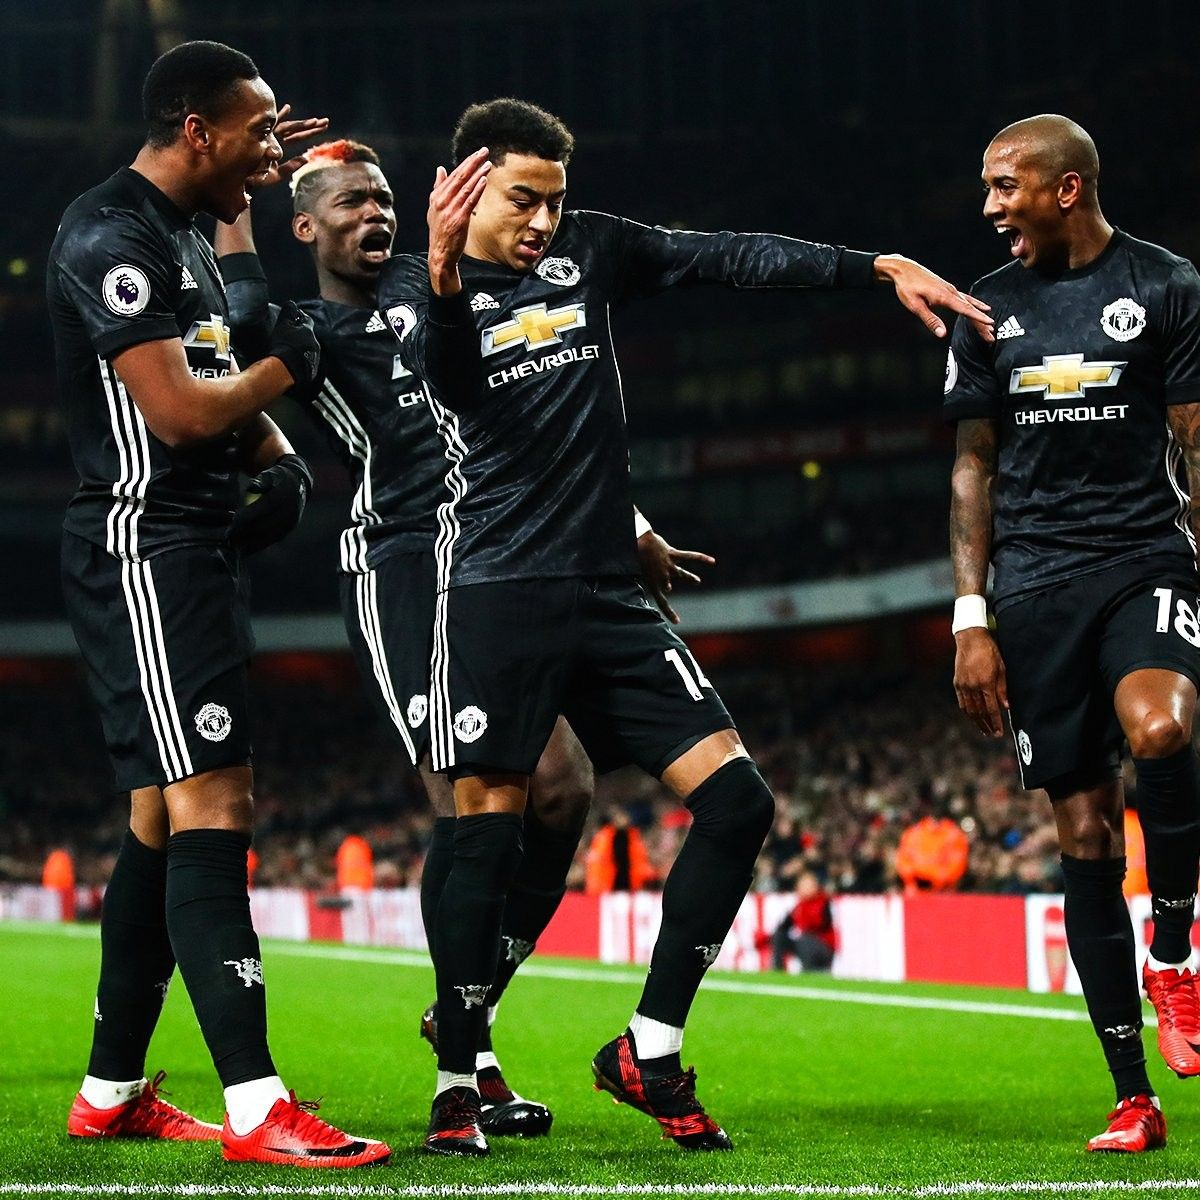 Pin by Nate on Manchester United ️ Premier league